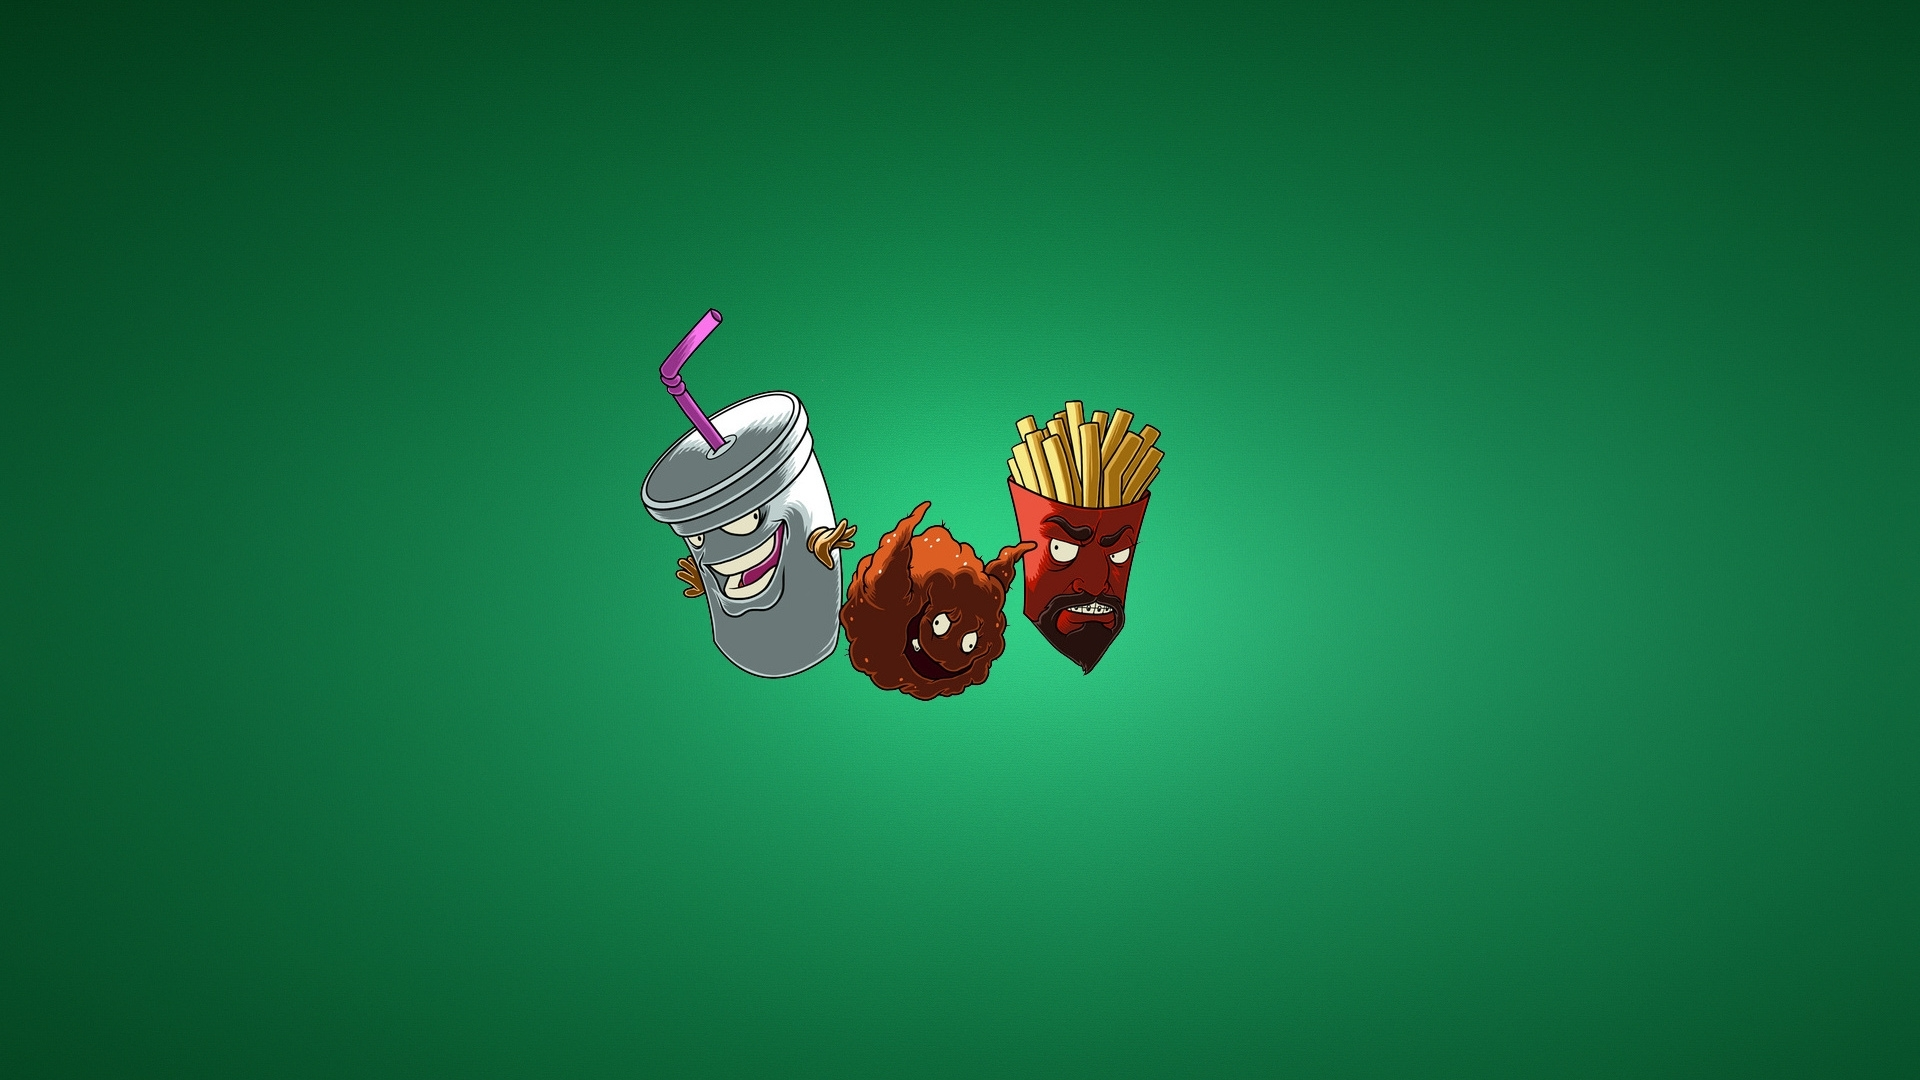 download wallpaper frylock, the fries, meatwad, milkshake, meatballs